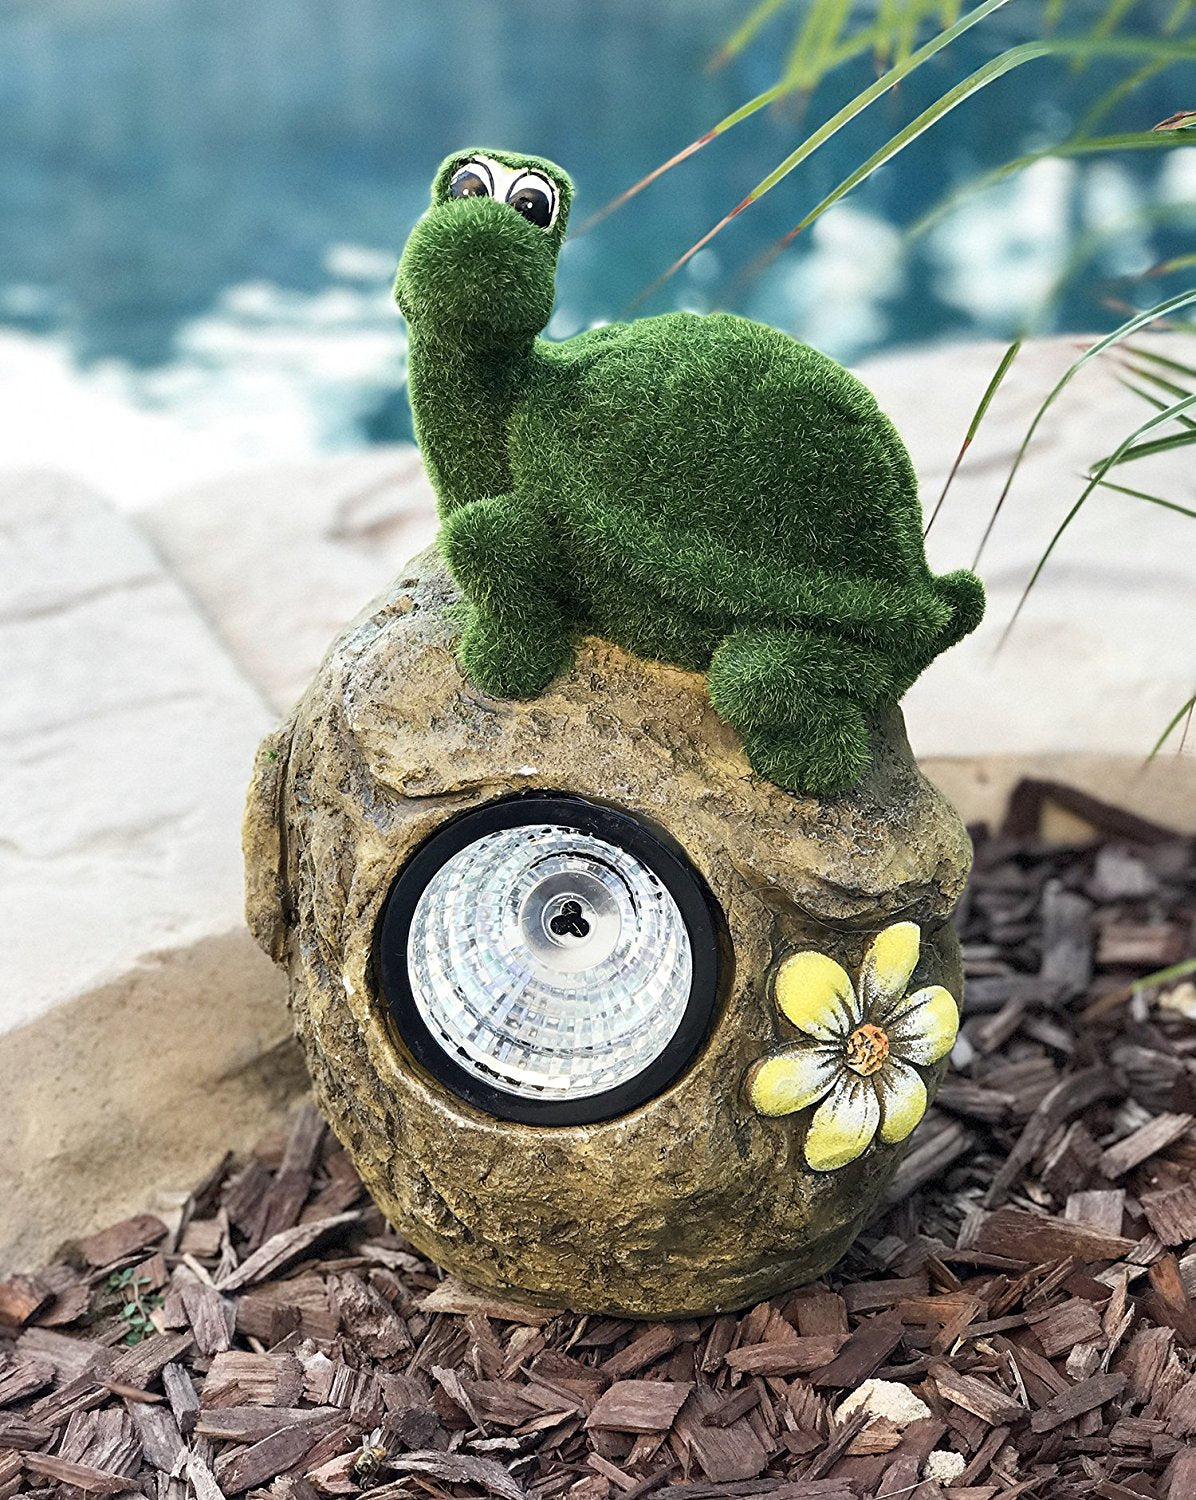 Solar Powered Tortoise On Garden Rock Sculpture In Flocked Artificial Grass Decorative Sculpture 13.5 Inches